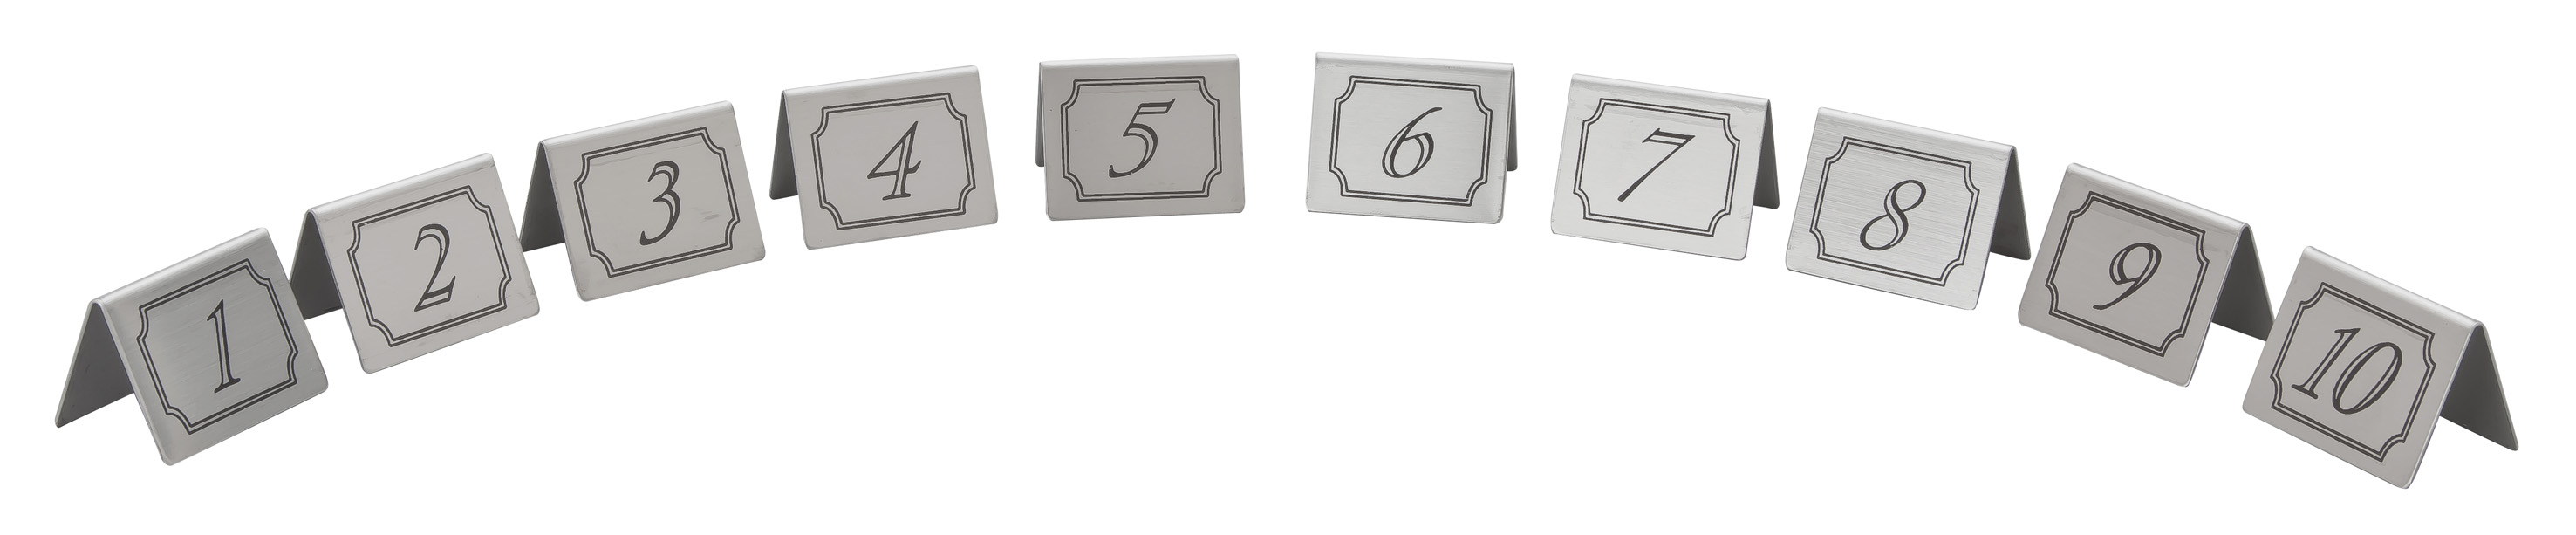 Stainless Steel Table Numbers Licensed Trade Supplies - Stainless steel table numbers